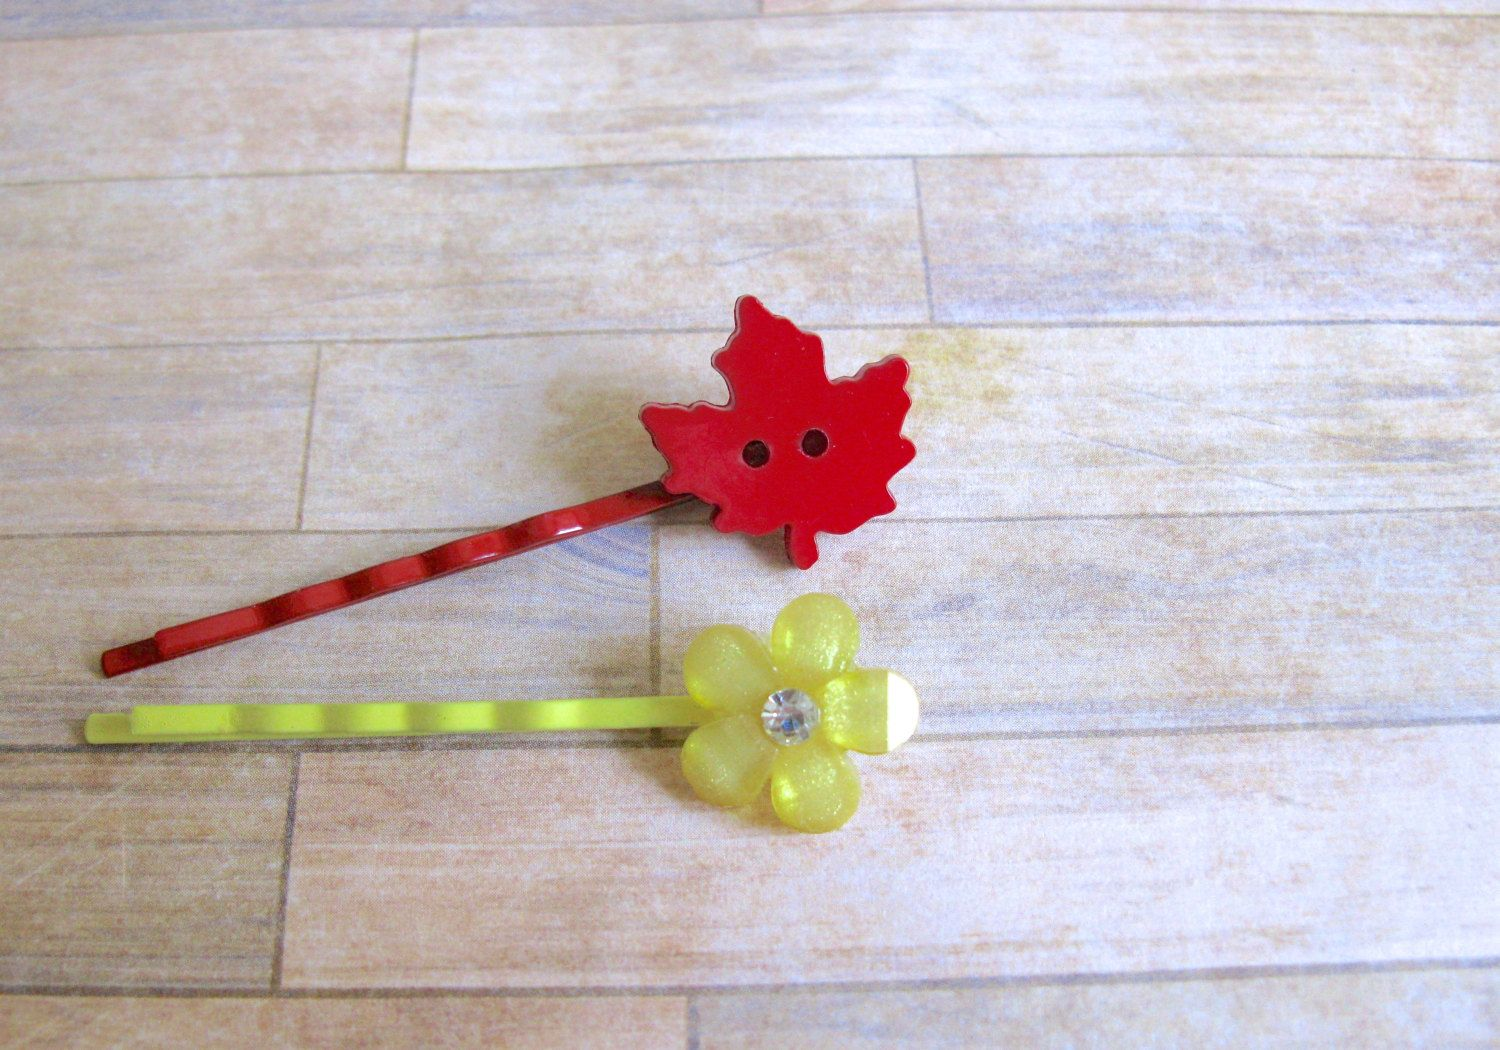 Flower Hair Clip, Leaf Hair Clip, Bow Hair Clip, Red Leaf, Yellow Flower, Orange Bow Hair Clip, Fall Hair Accessories by EyeCandiByCandi on Etsy